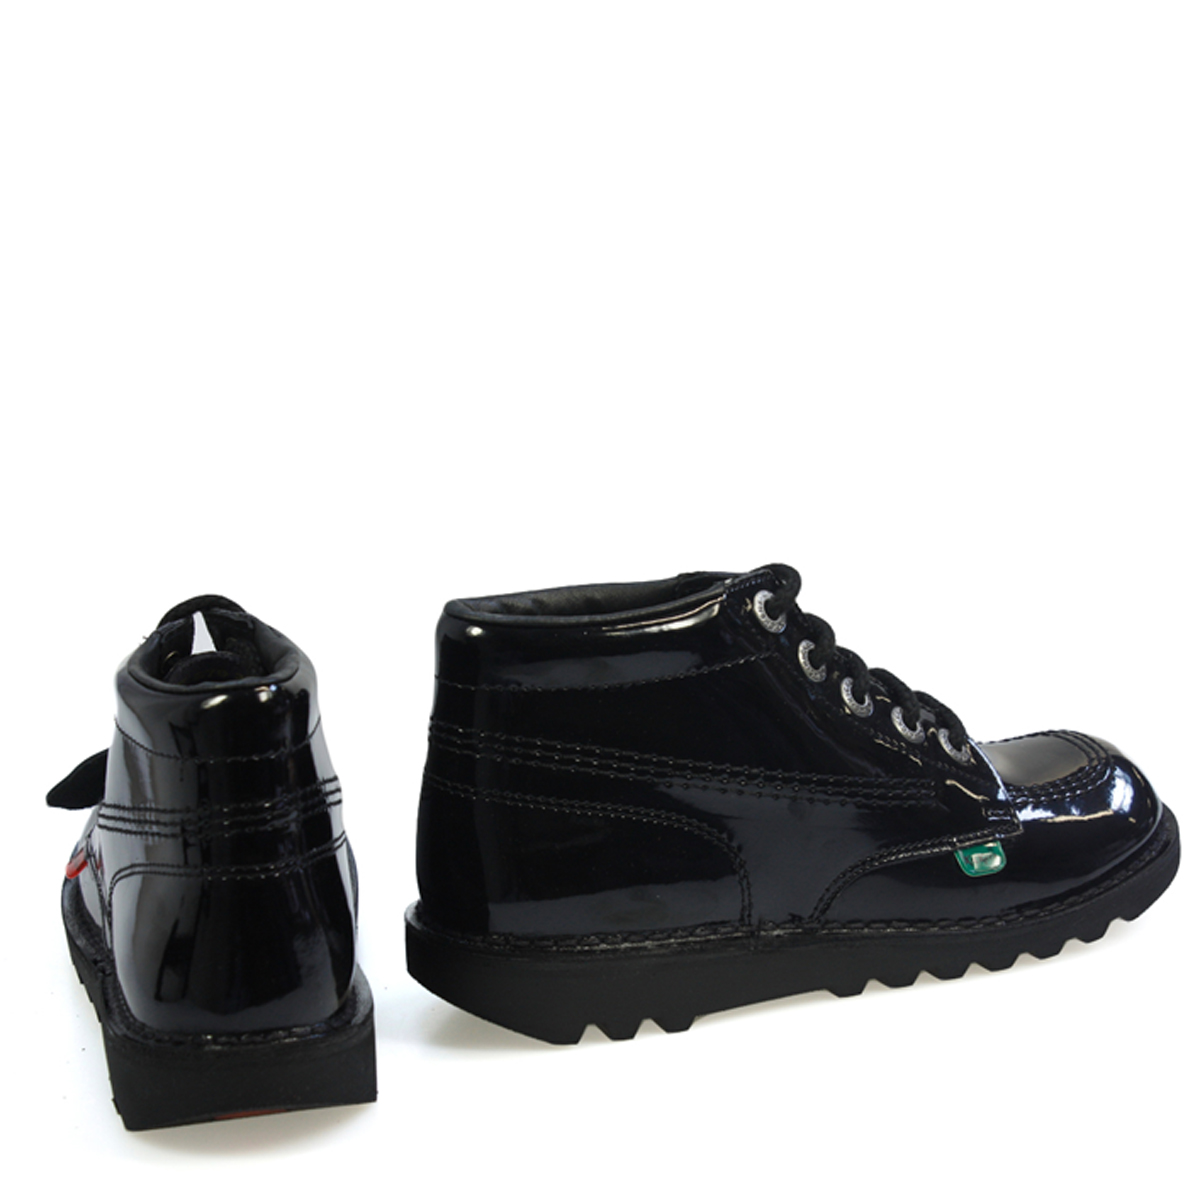 Kickers-Kick-Hi-Womens-Black-Patent-Leather-Boots-Lace-Up-Ladies-Ankle-Shoes